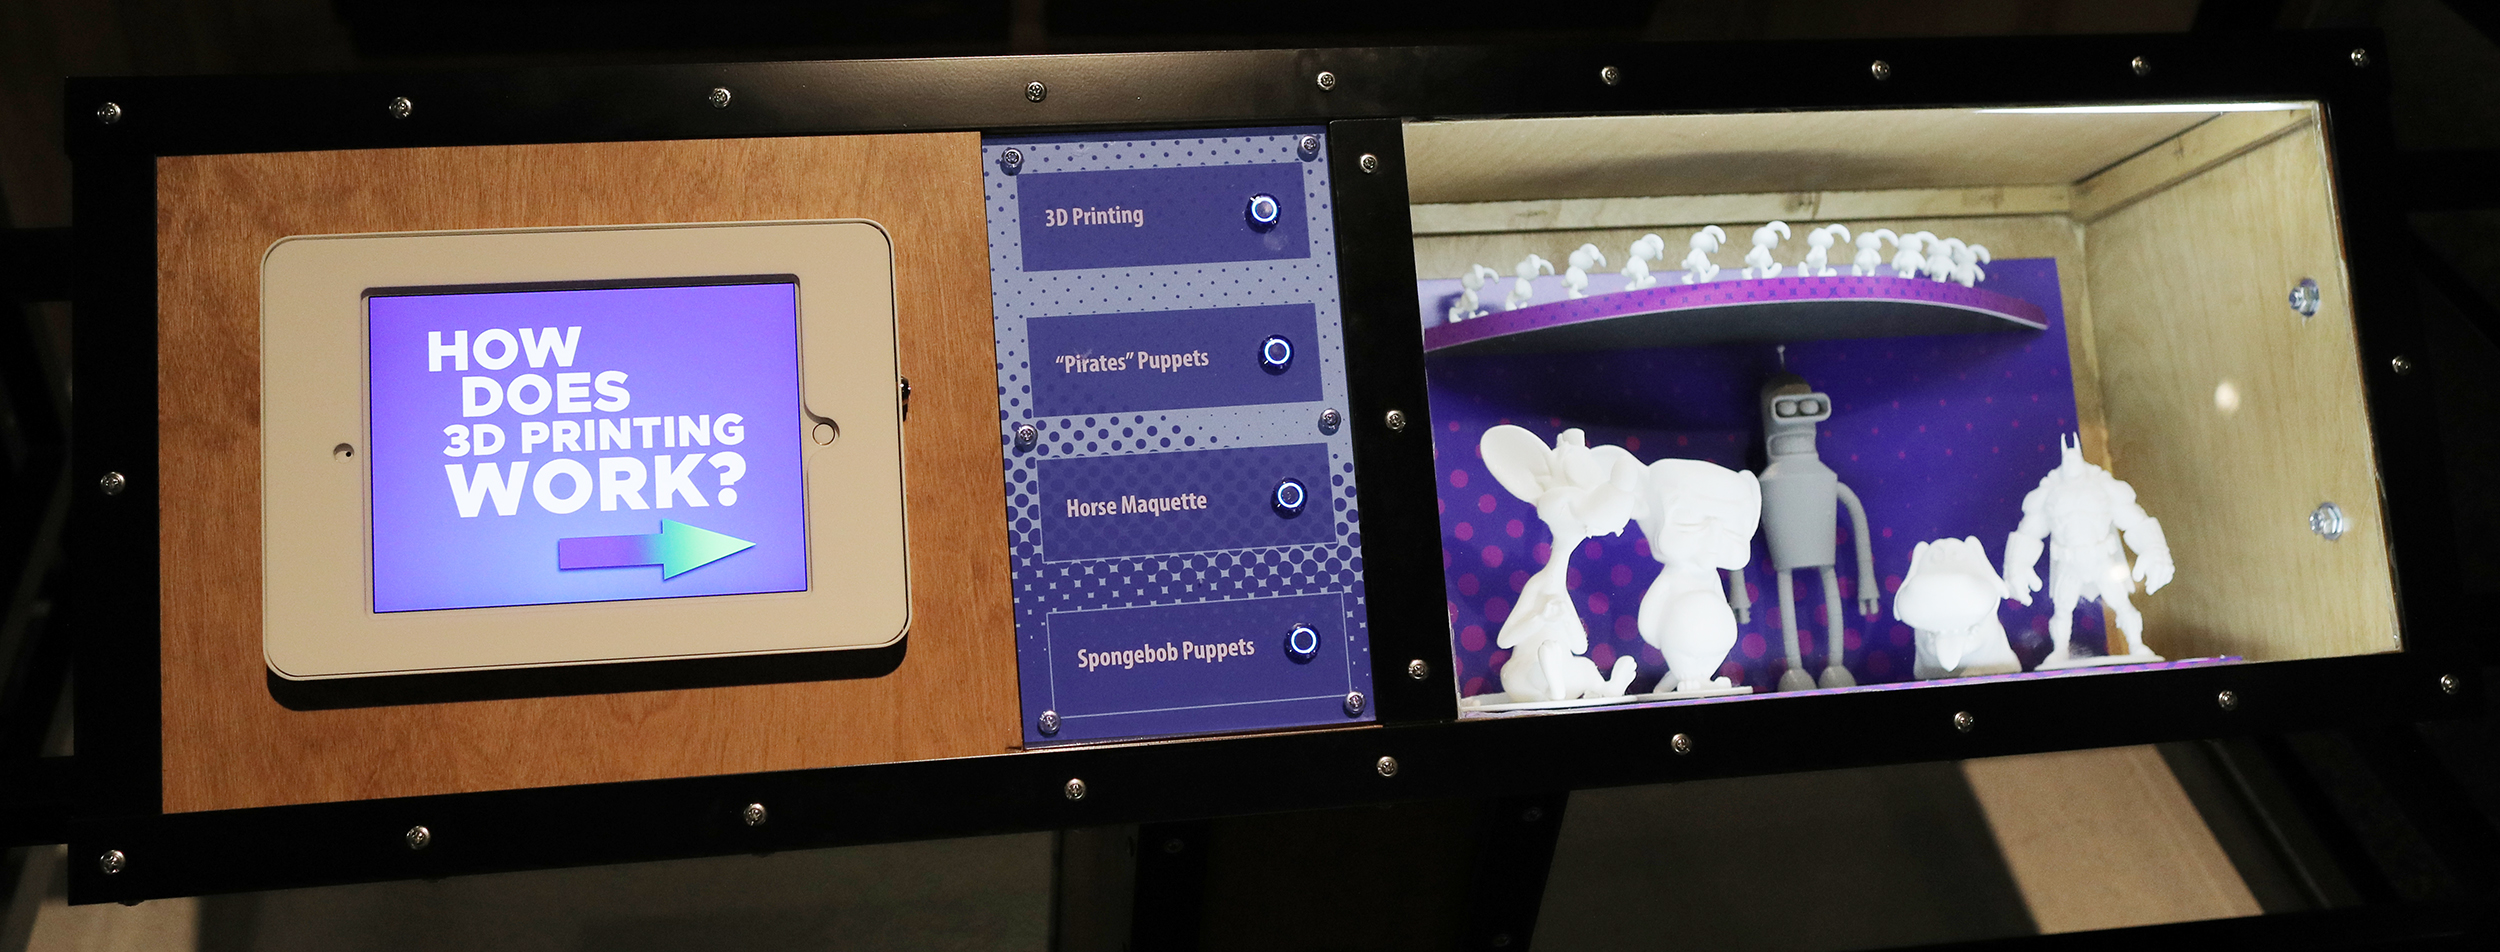 3D Printing Station interactive control panel.jpg